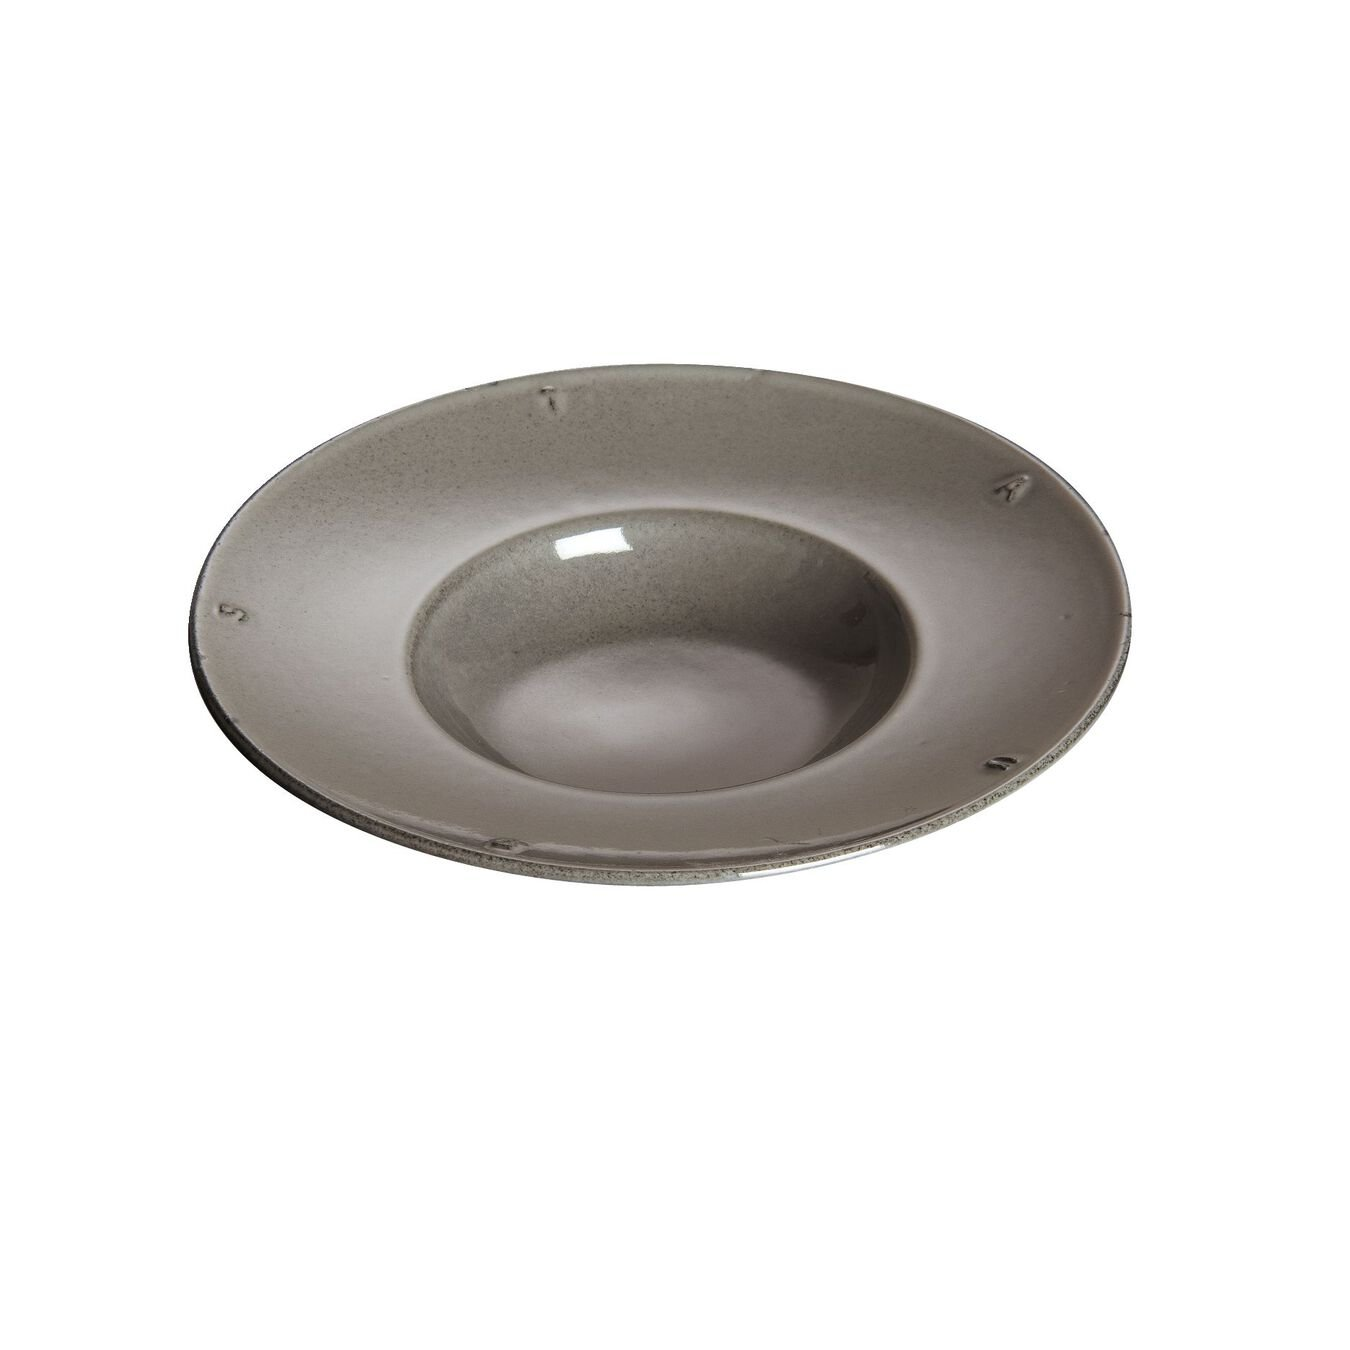 21 cm Cast iron round Assiette, Graphite-Grey,,large 3